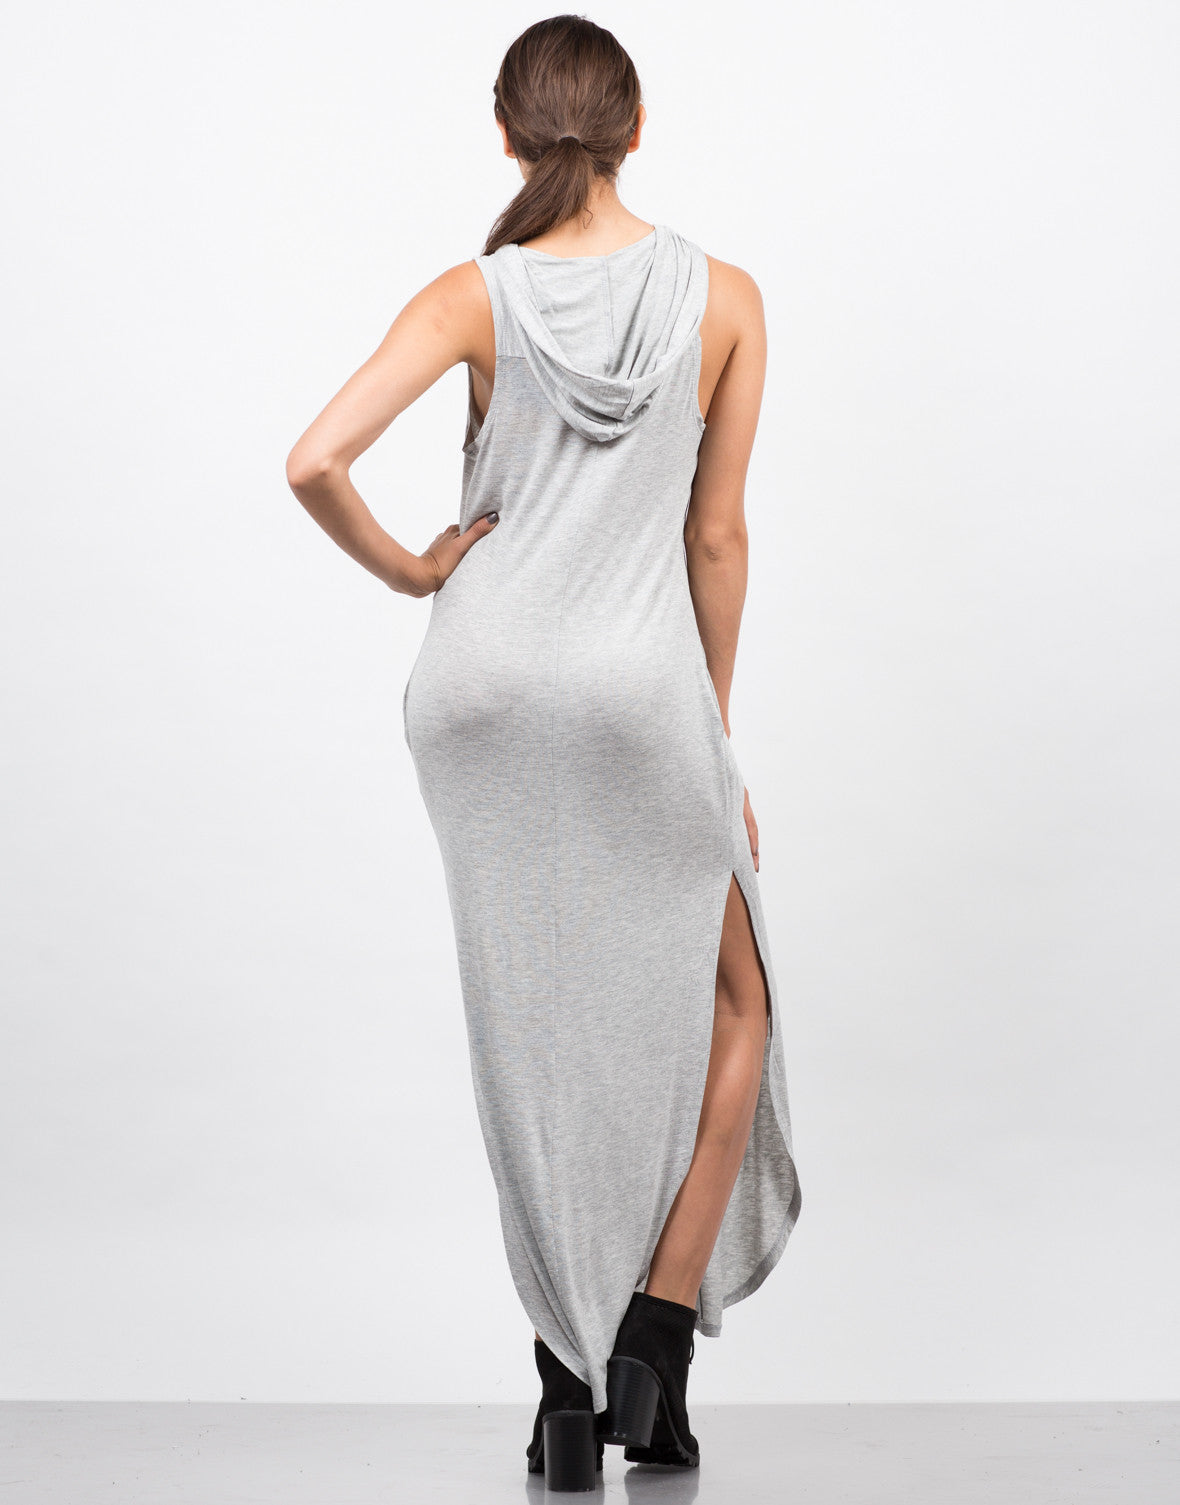 Back View of Hooded Lace Up Sleeveless Dress